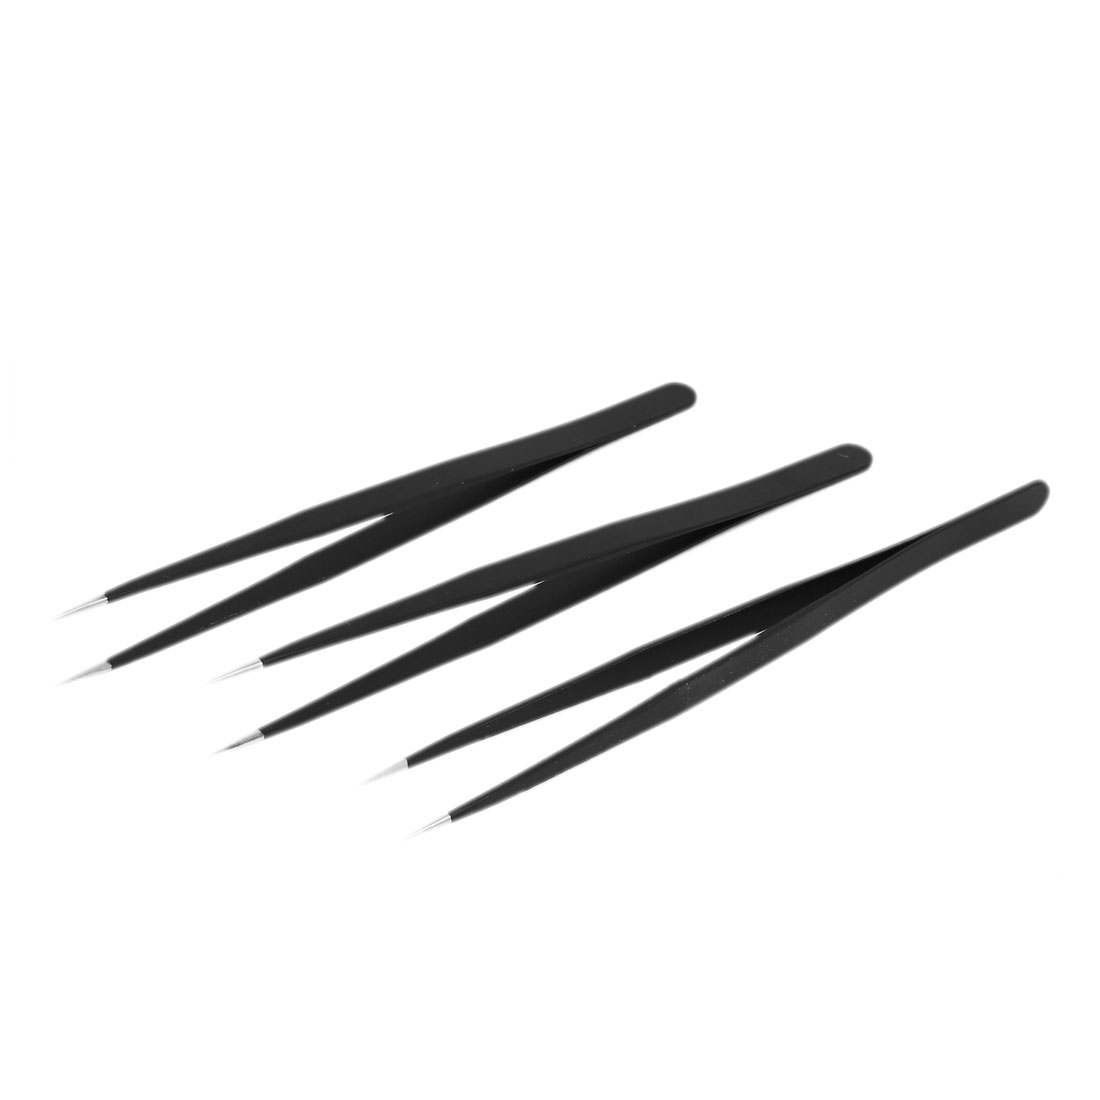 140mm Length 8mm Width Non-magnetic Straight Tip Tweezer Manual Tool Black 3pcs